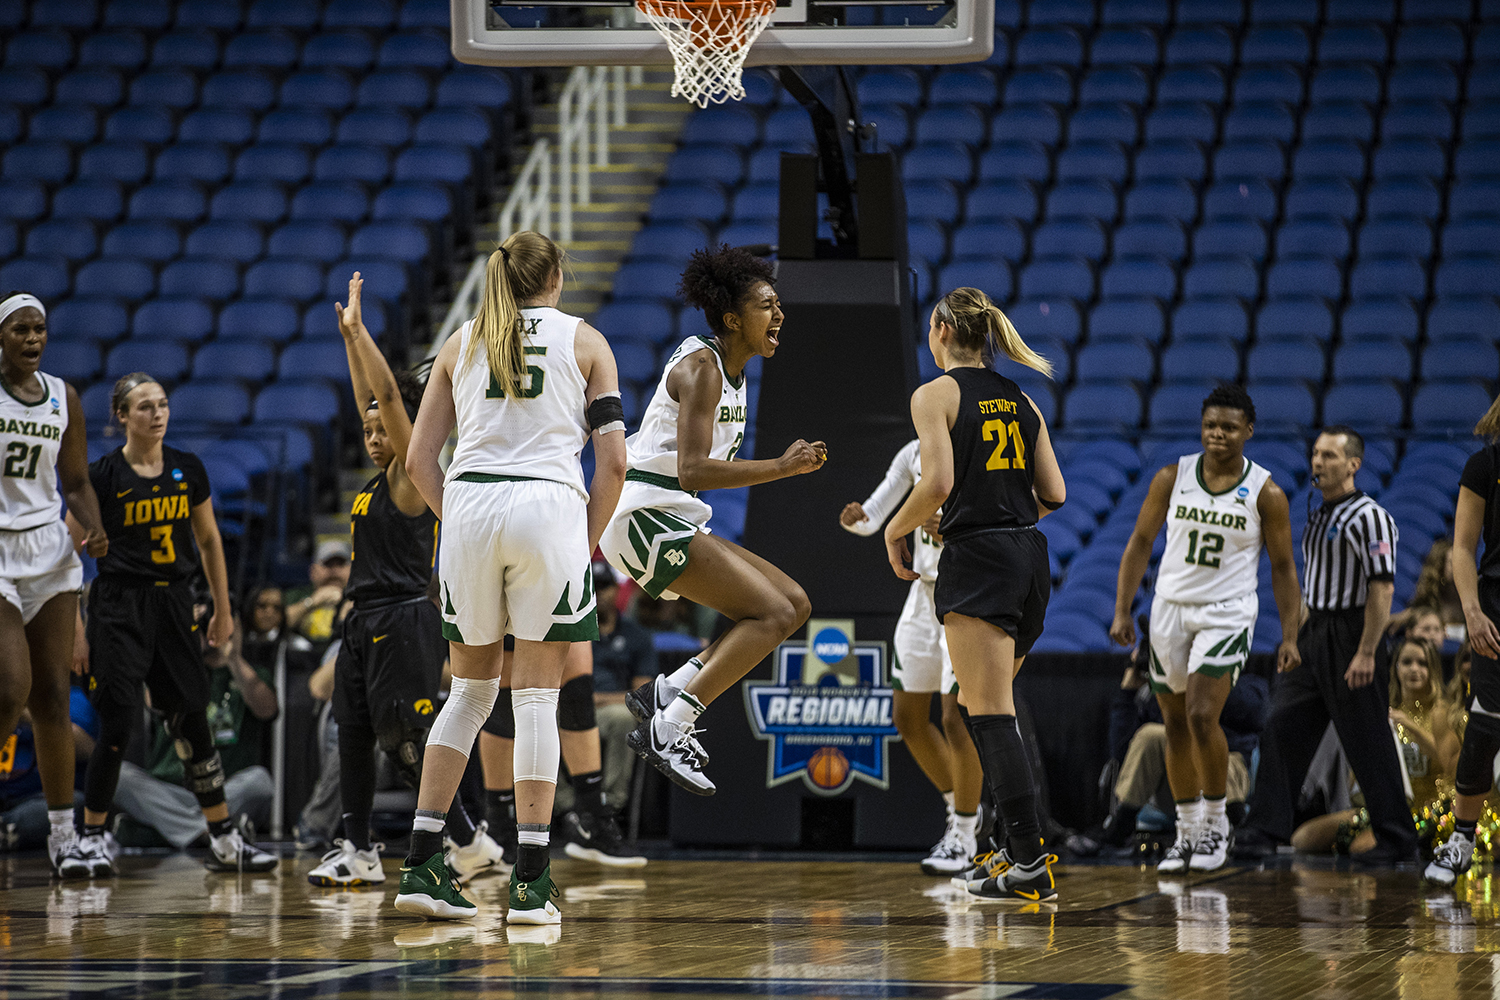 Baylor+guard+Didi+Richards+celebrates+a+basket+during+the+NCAA+Elite+8+game+against+Baylor+at+the+Greensboro+Coliseum+Complex+on+Monday%2C+April+1%2C+2019.+The+Bears+defeated+the+Hawkeyes+85-53.